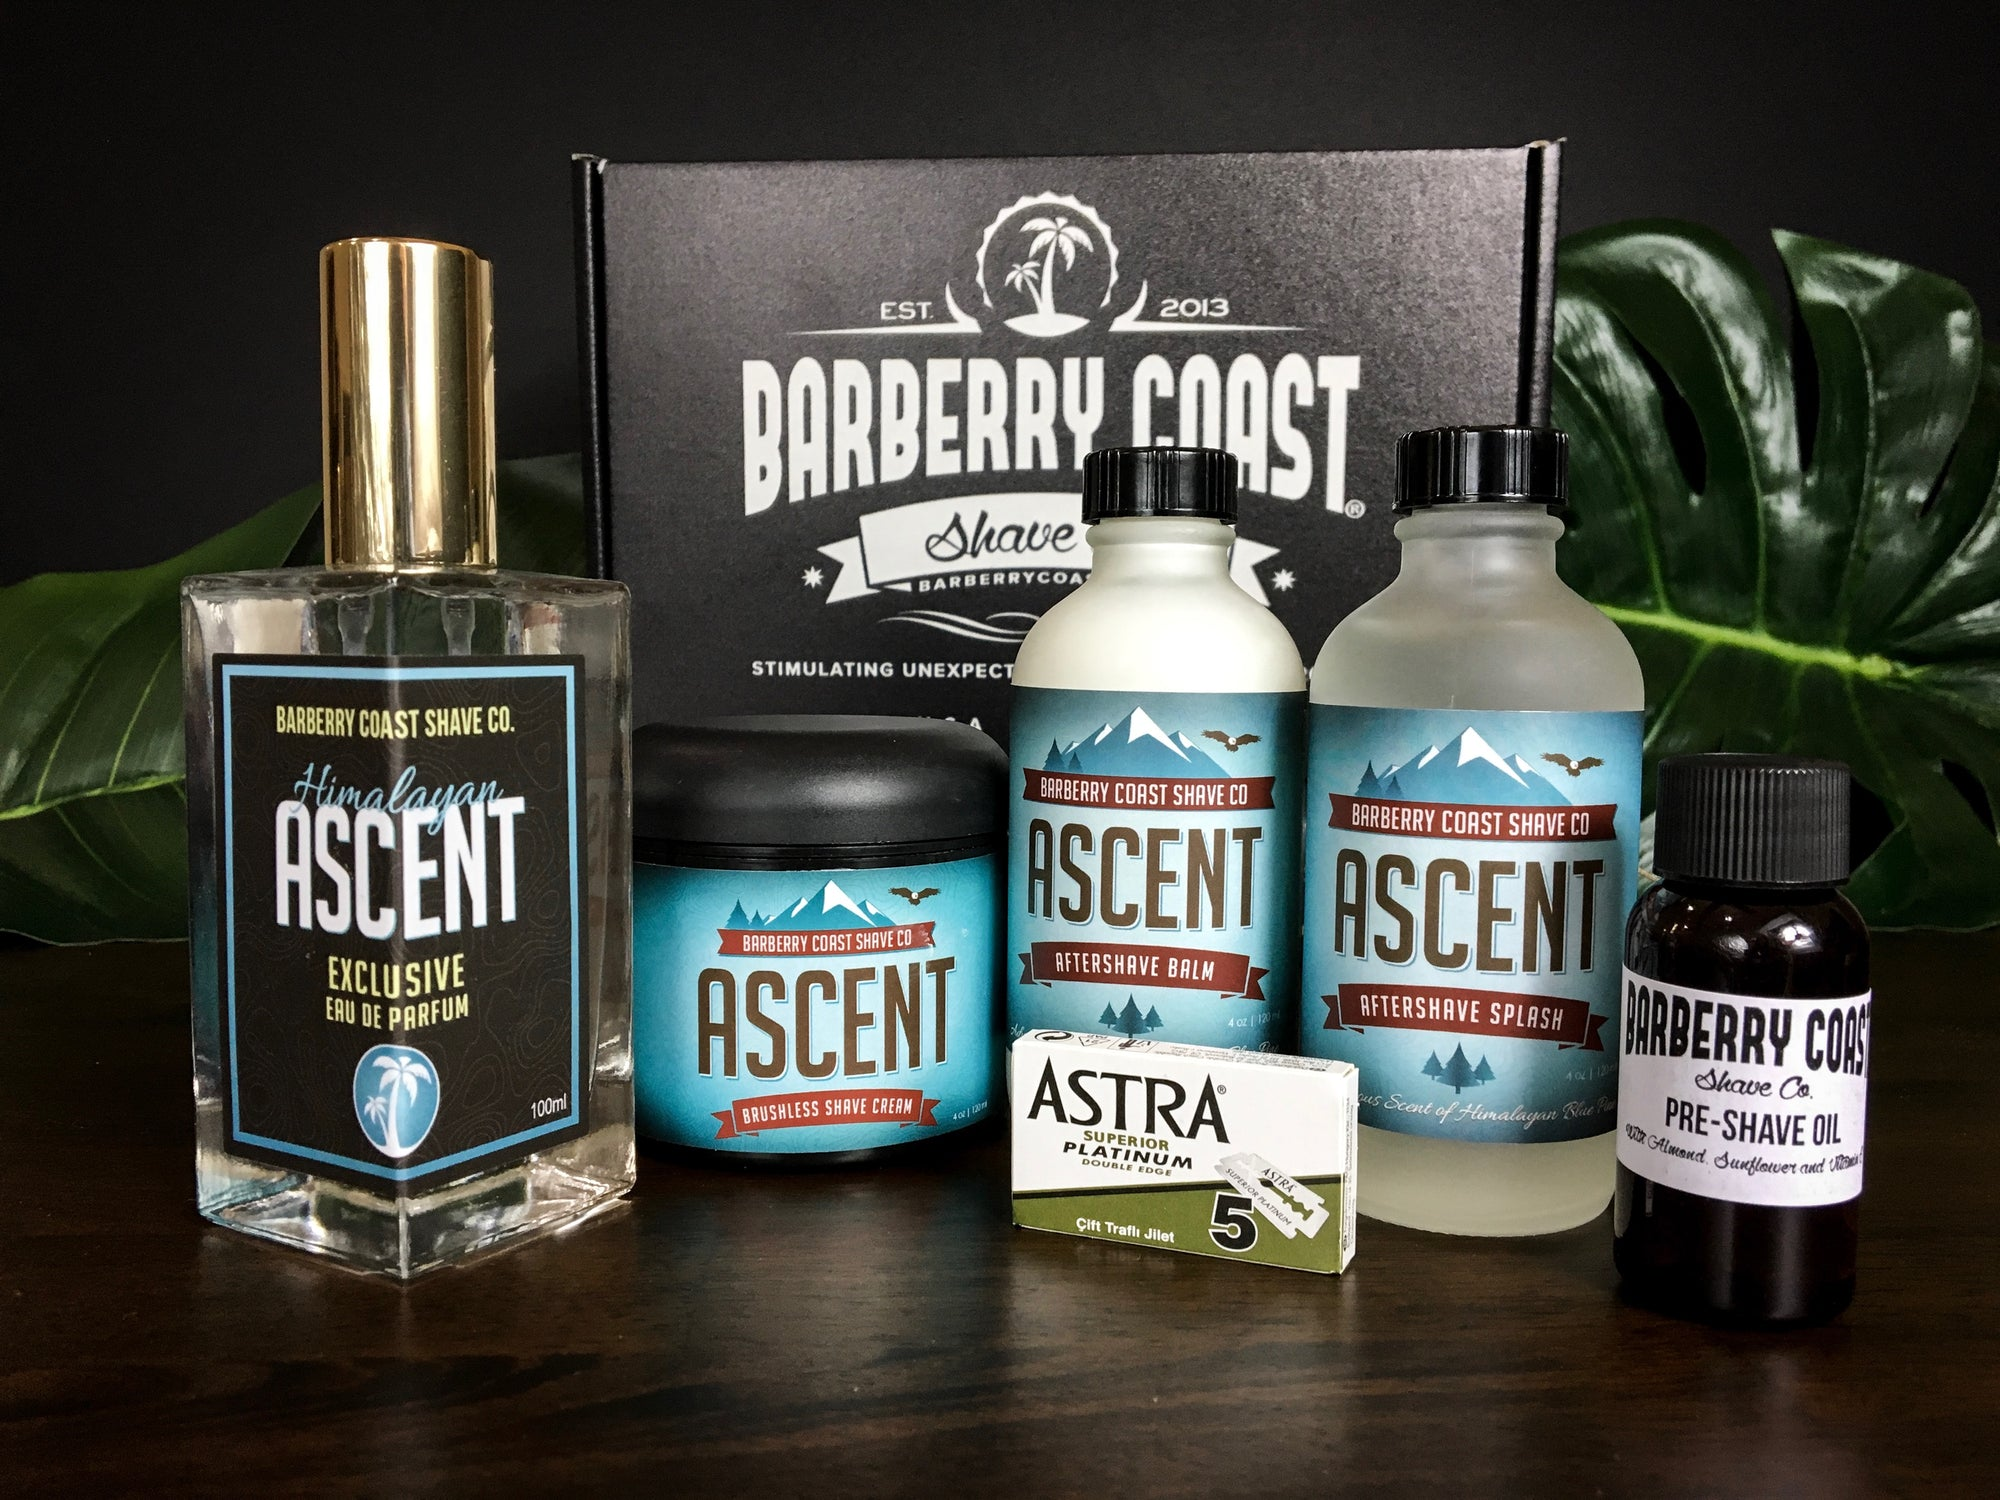 Himalayan Ascent Shaving & Cologne Gift Set - FREE Same Day Shipping